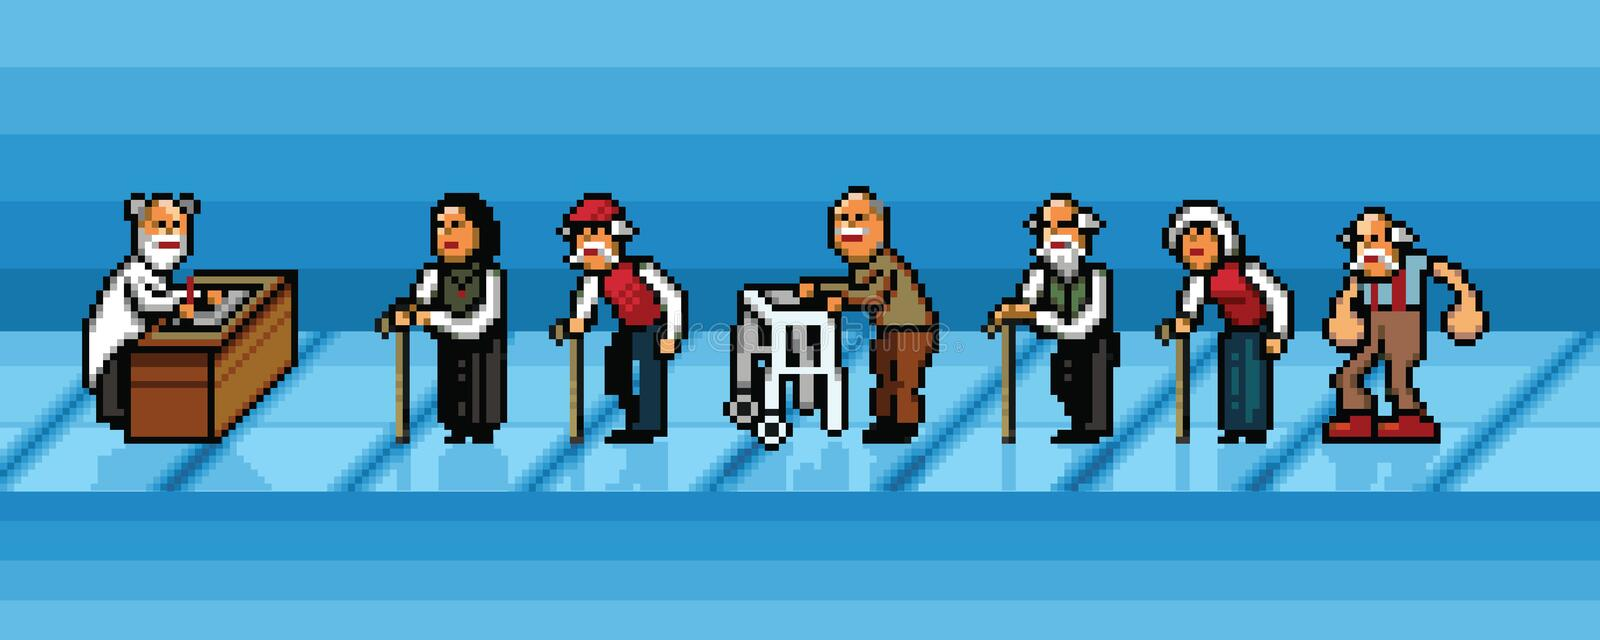 Old people waiting in line in hospital pixel art vector layers illustration vector illustration